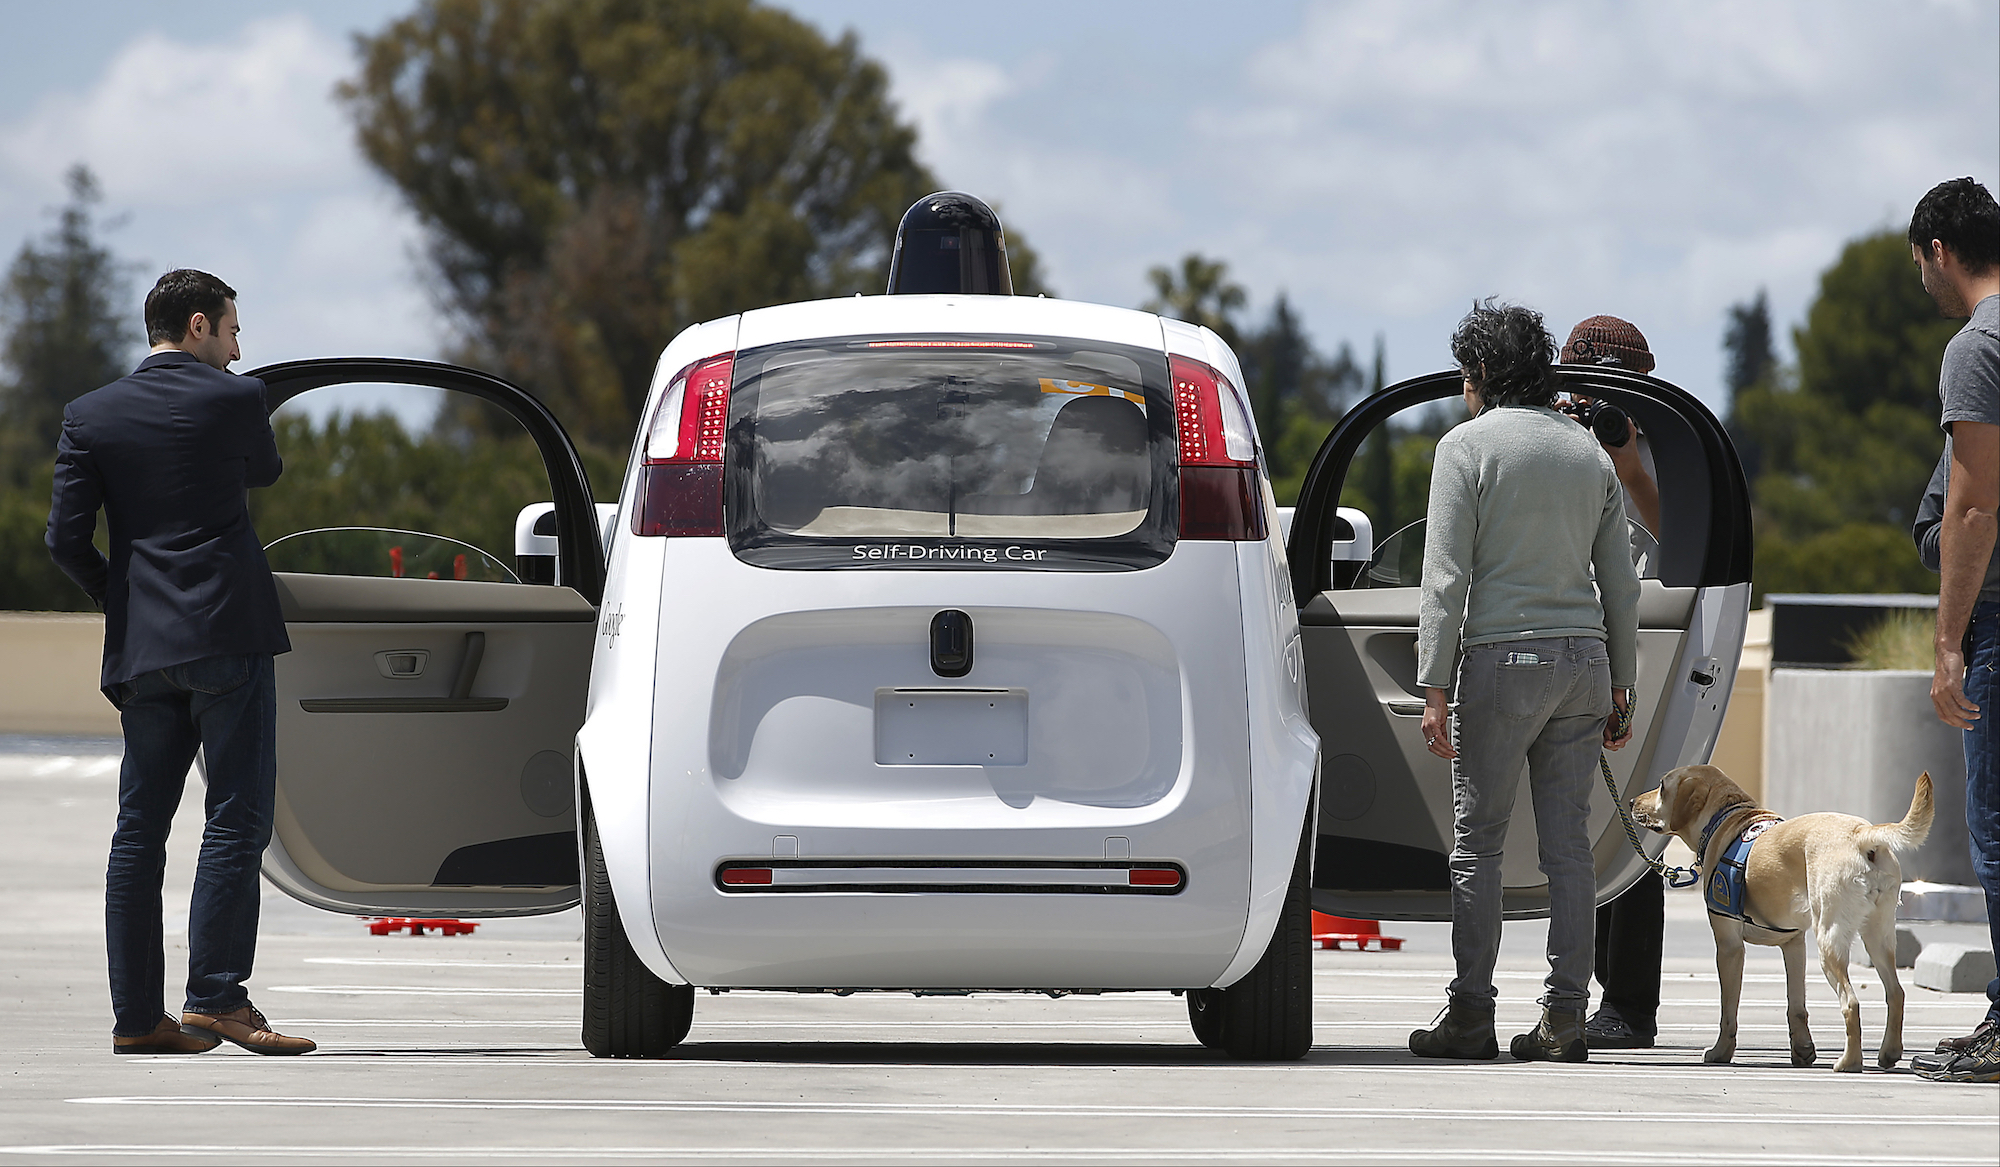 Passengers get into a self-driving car.